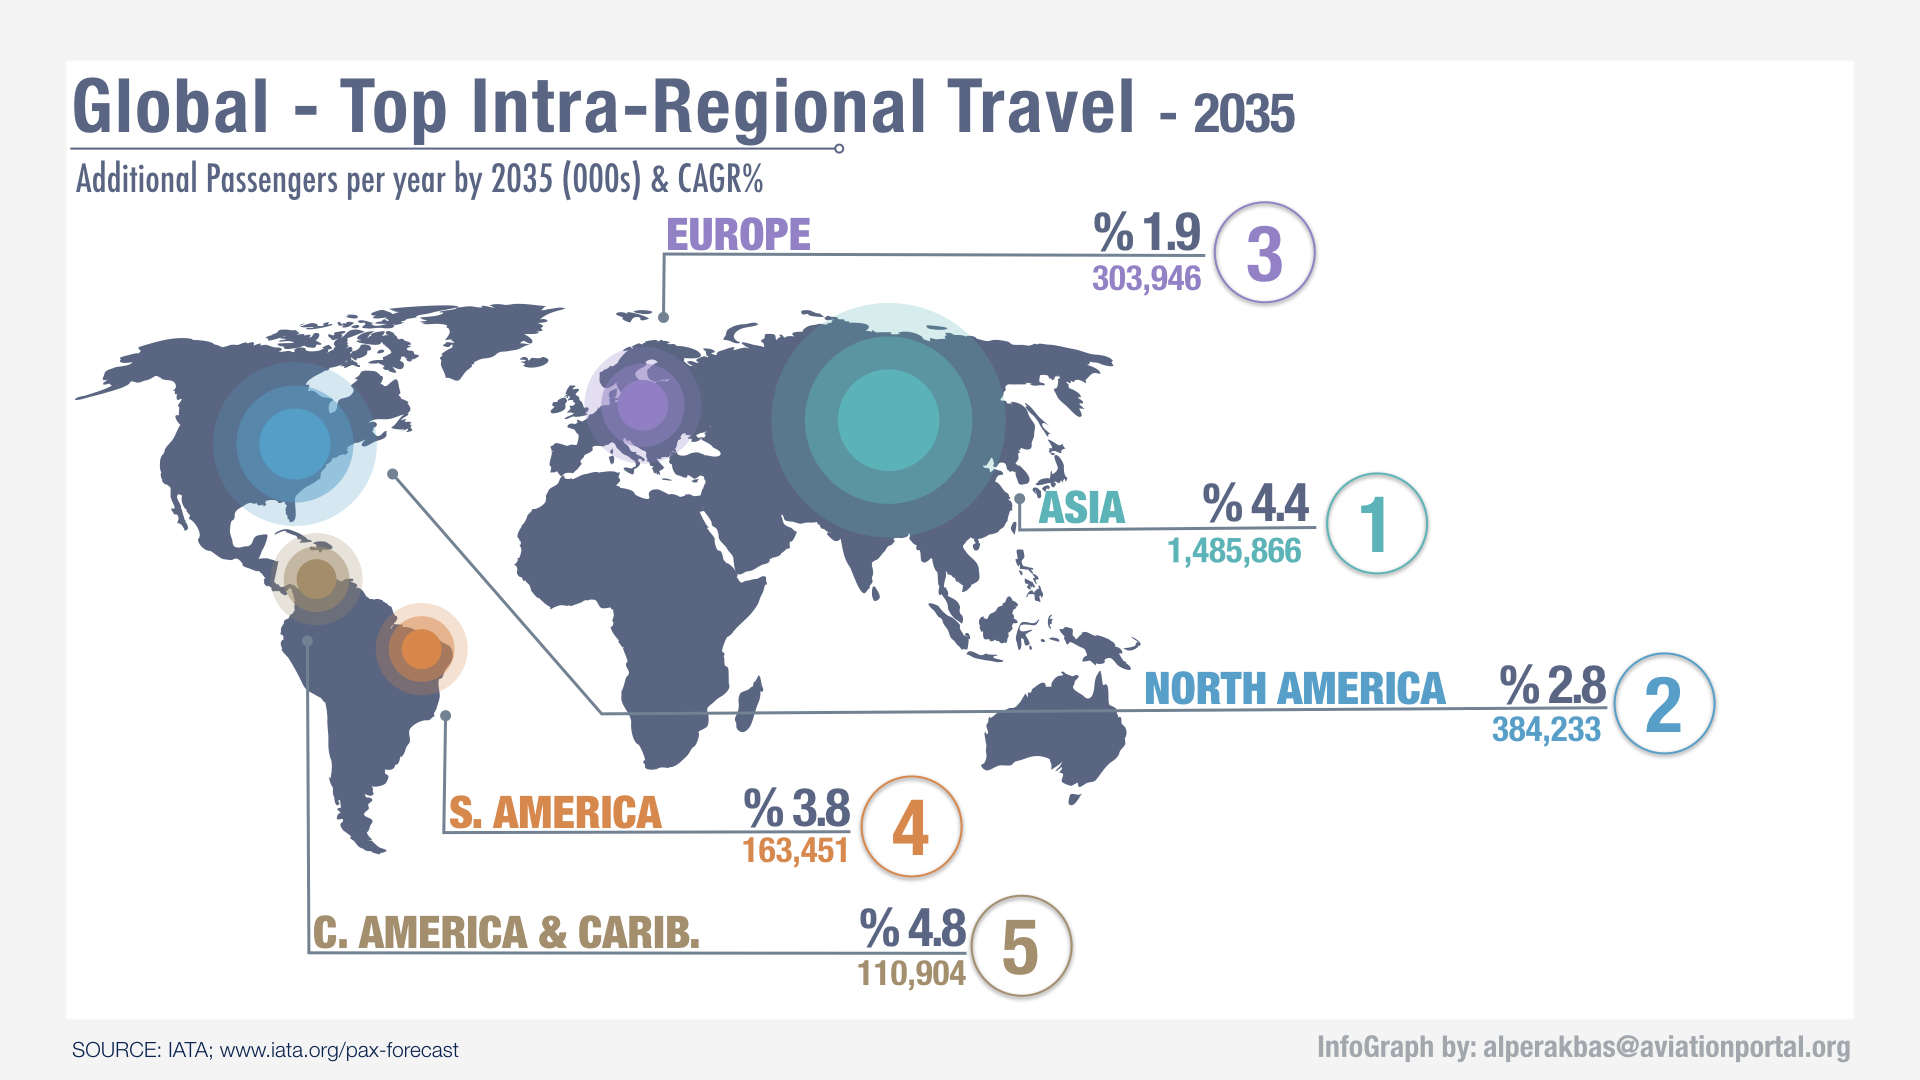 Top intra-regional travels by 2035